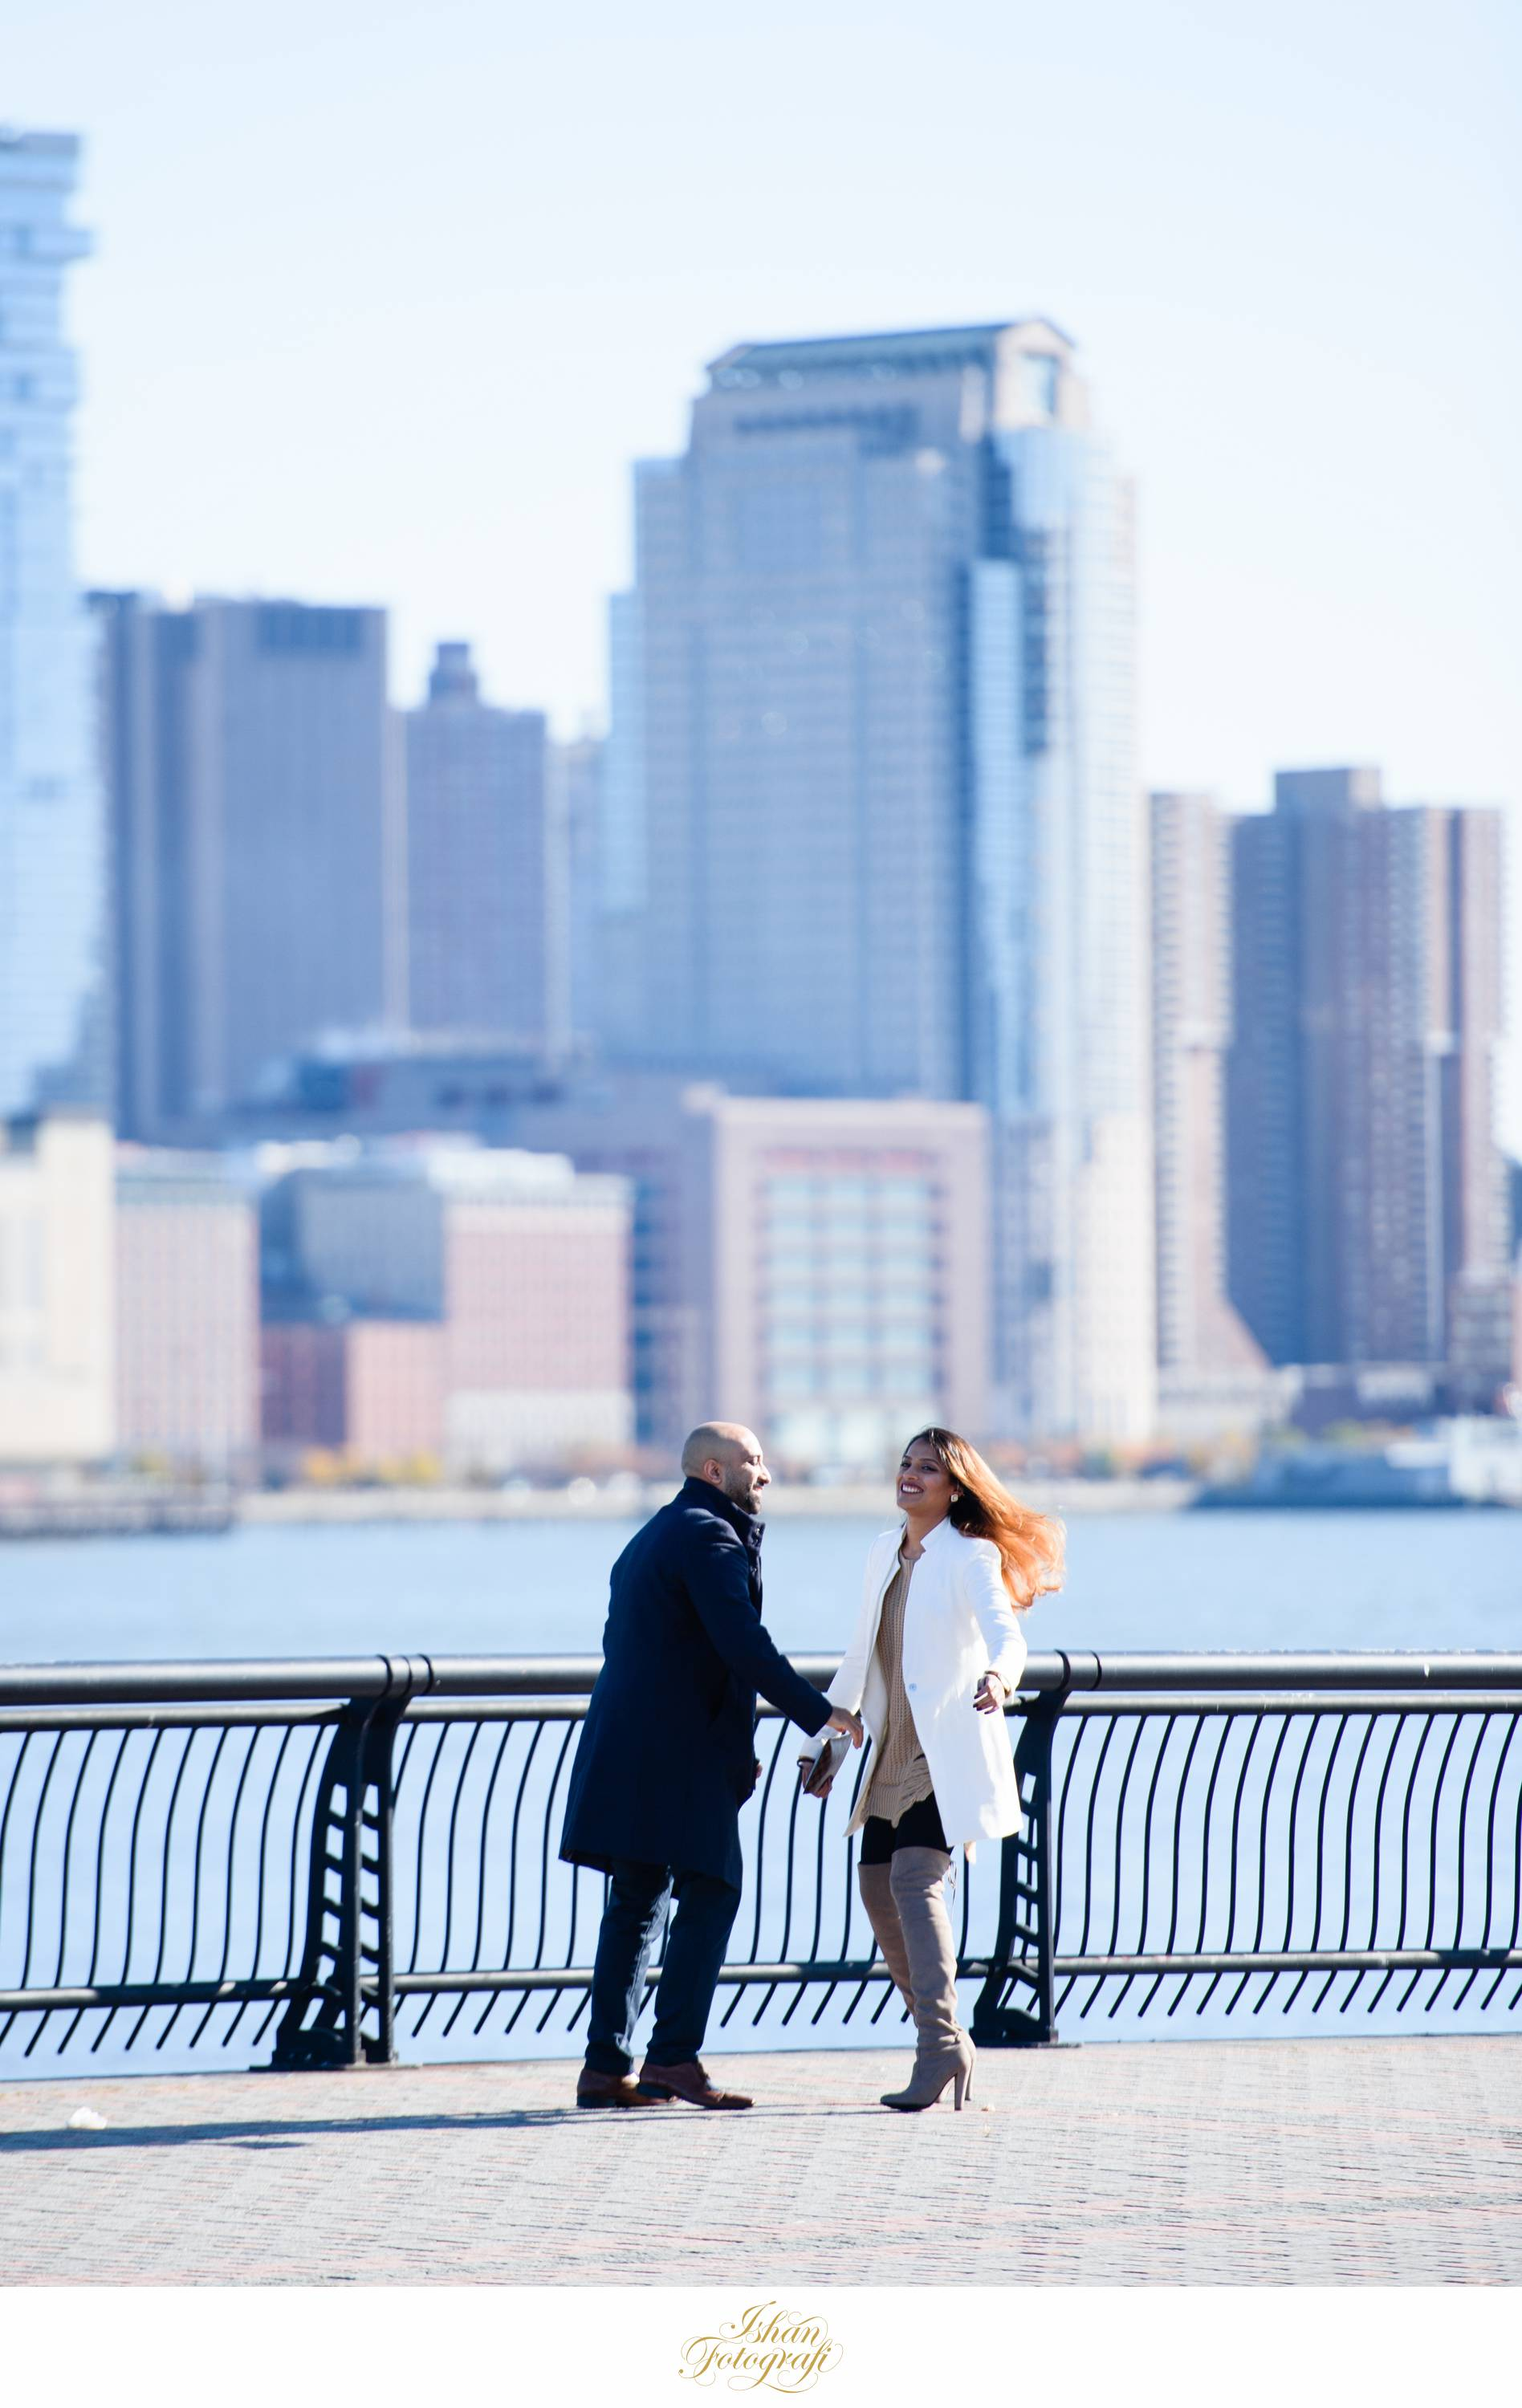 As Jay began his proposal, Shalini could not control her emotions and was ecstatic! Hoboken is a such a great location for a surprise proposal and also engagement shoots. We love photographing in Hoboken in around Pier A & Pier C park.